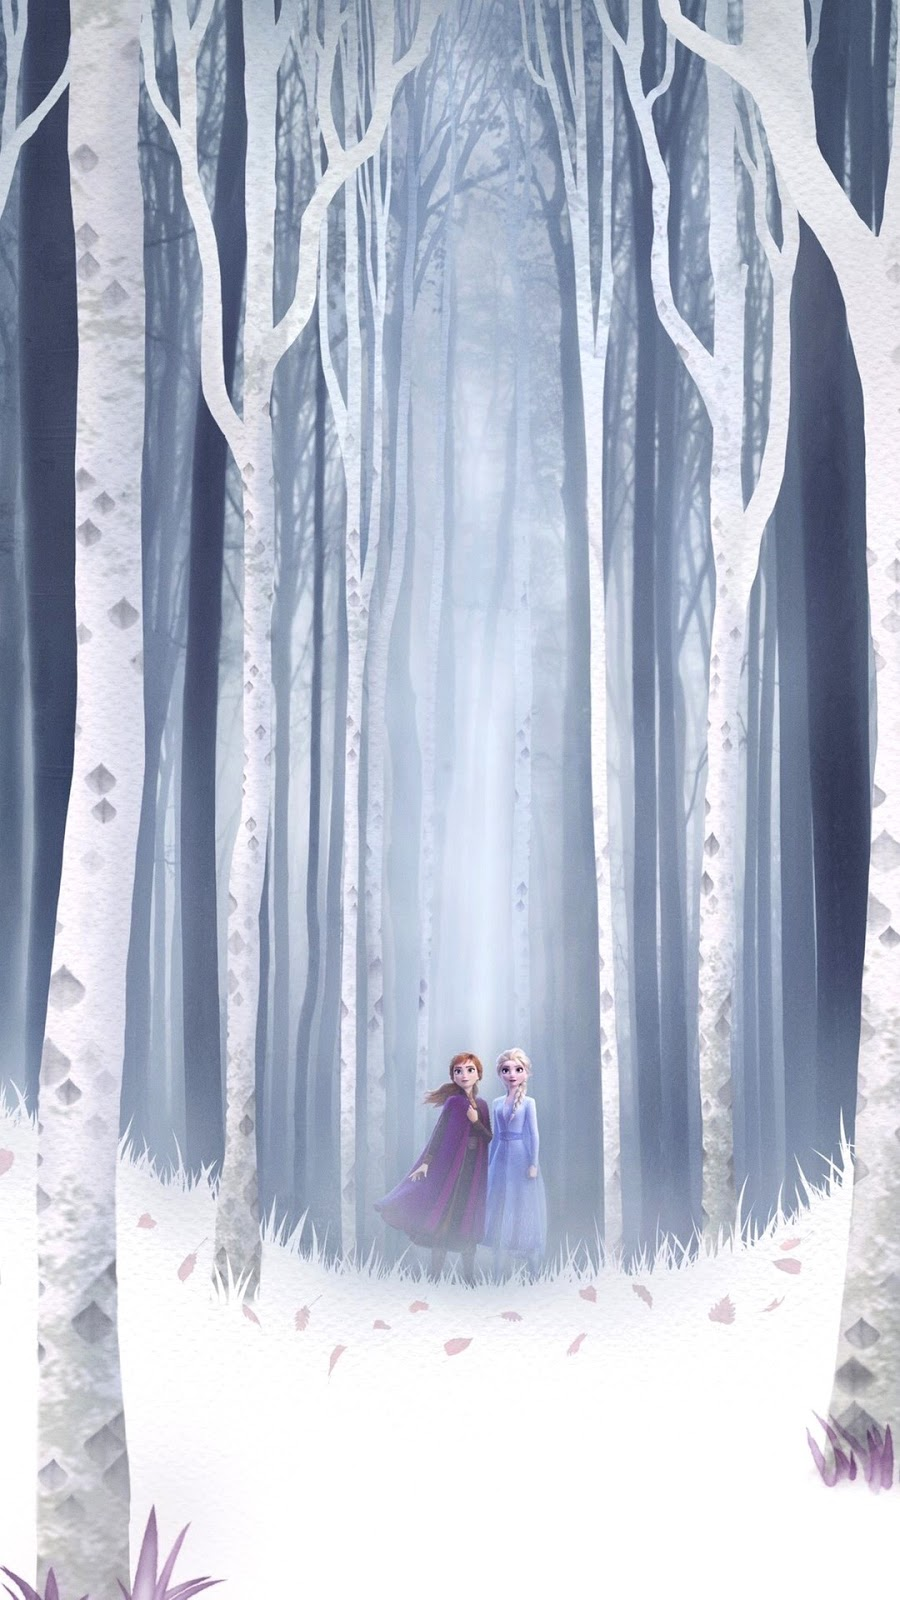 Frozen 2 Mobile Wallpaper